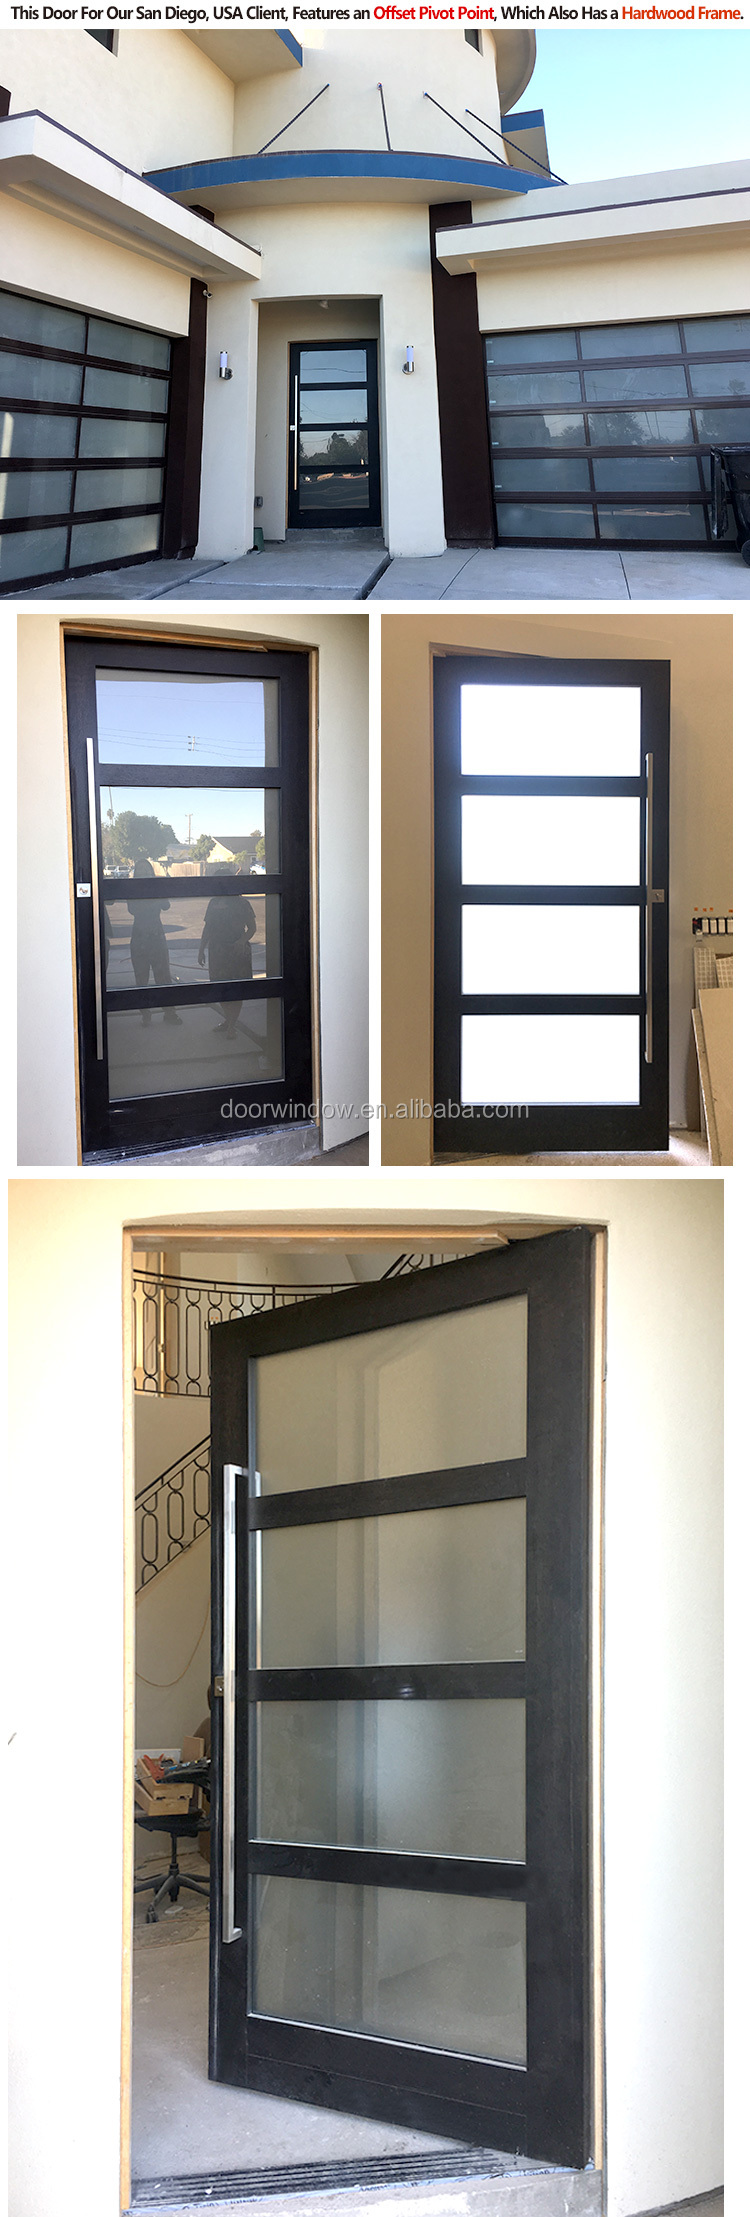 External doors aluminium swing exterior frameless glass aluminum door with